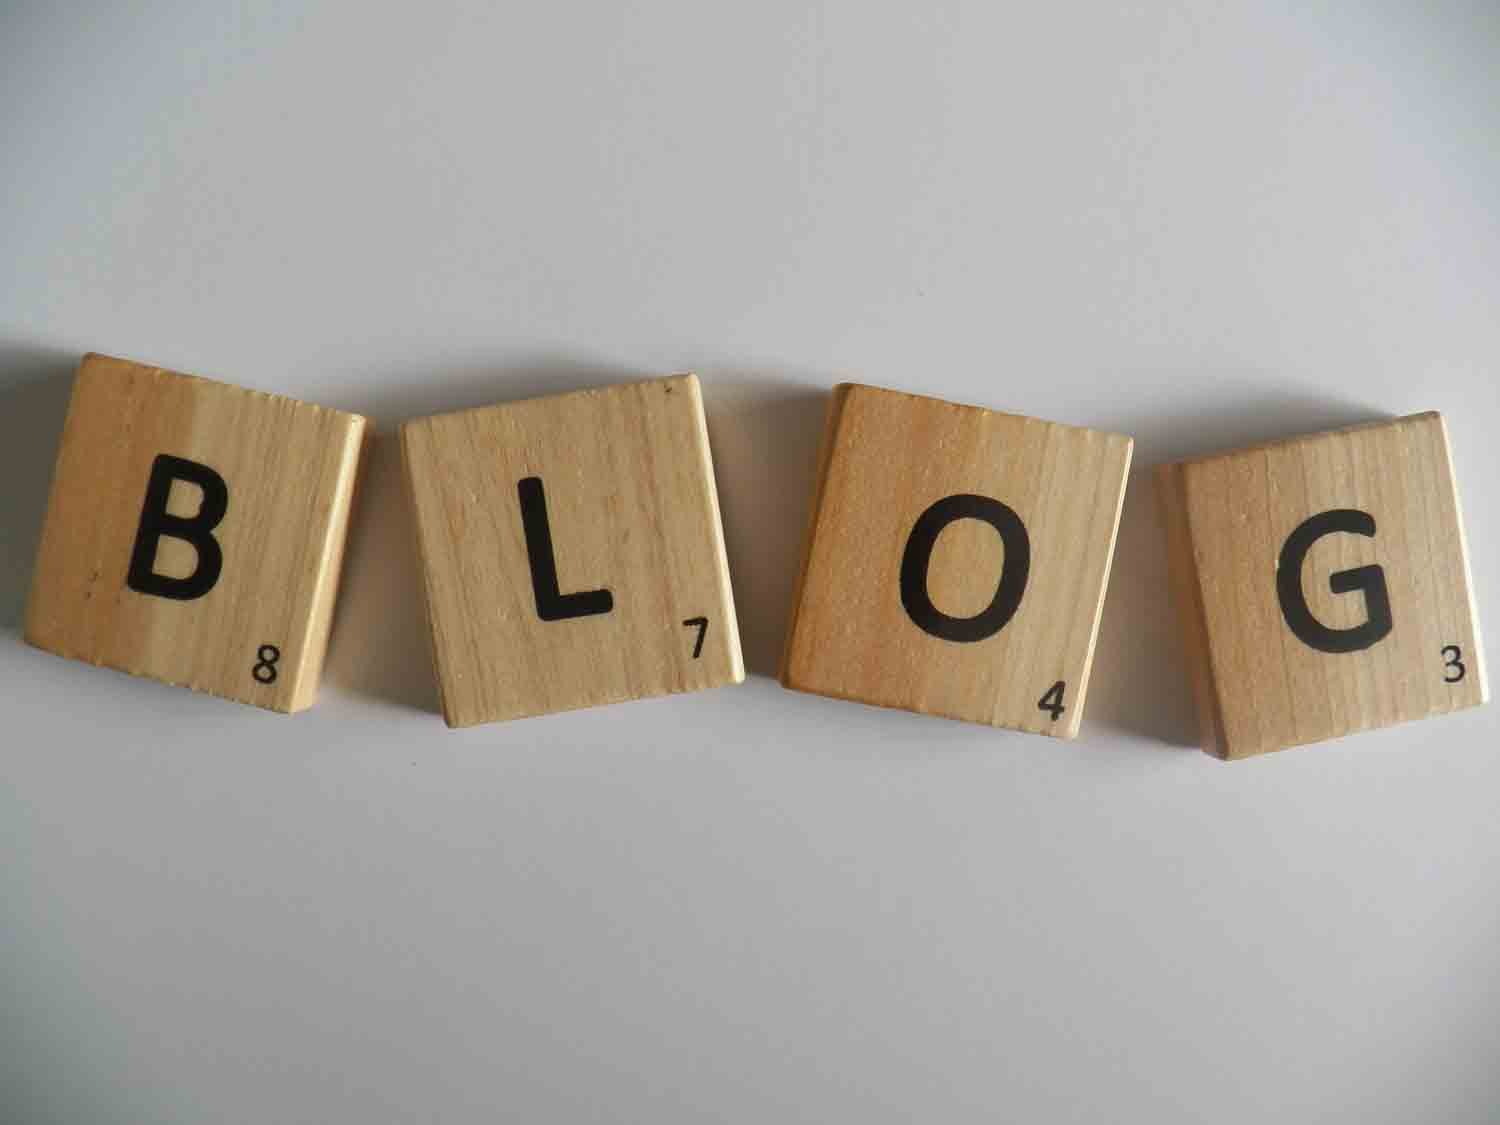 KerryAThompson.com blog: Blogging has benefits for increasing website traffic and improving SEO